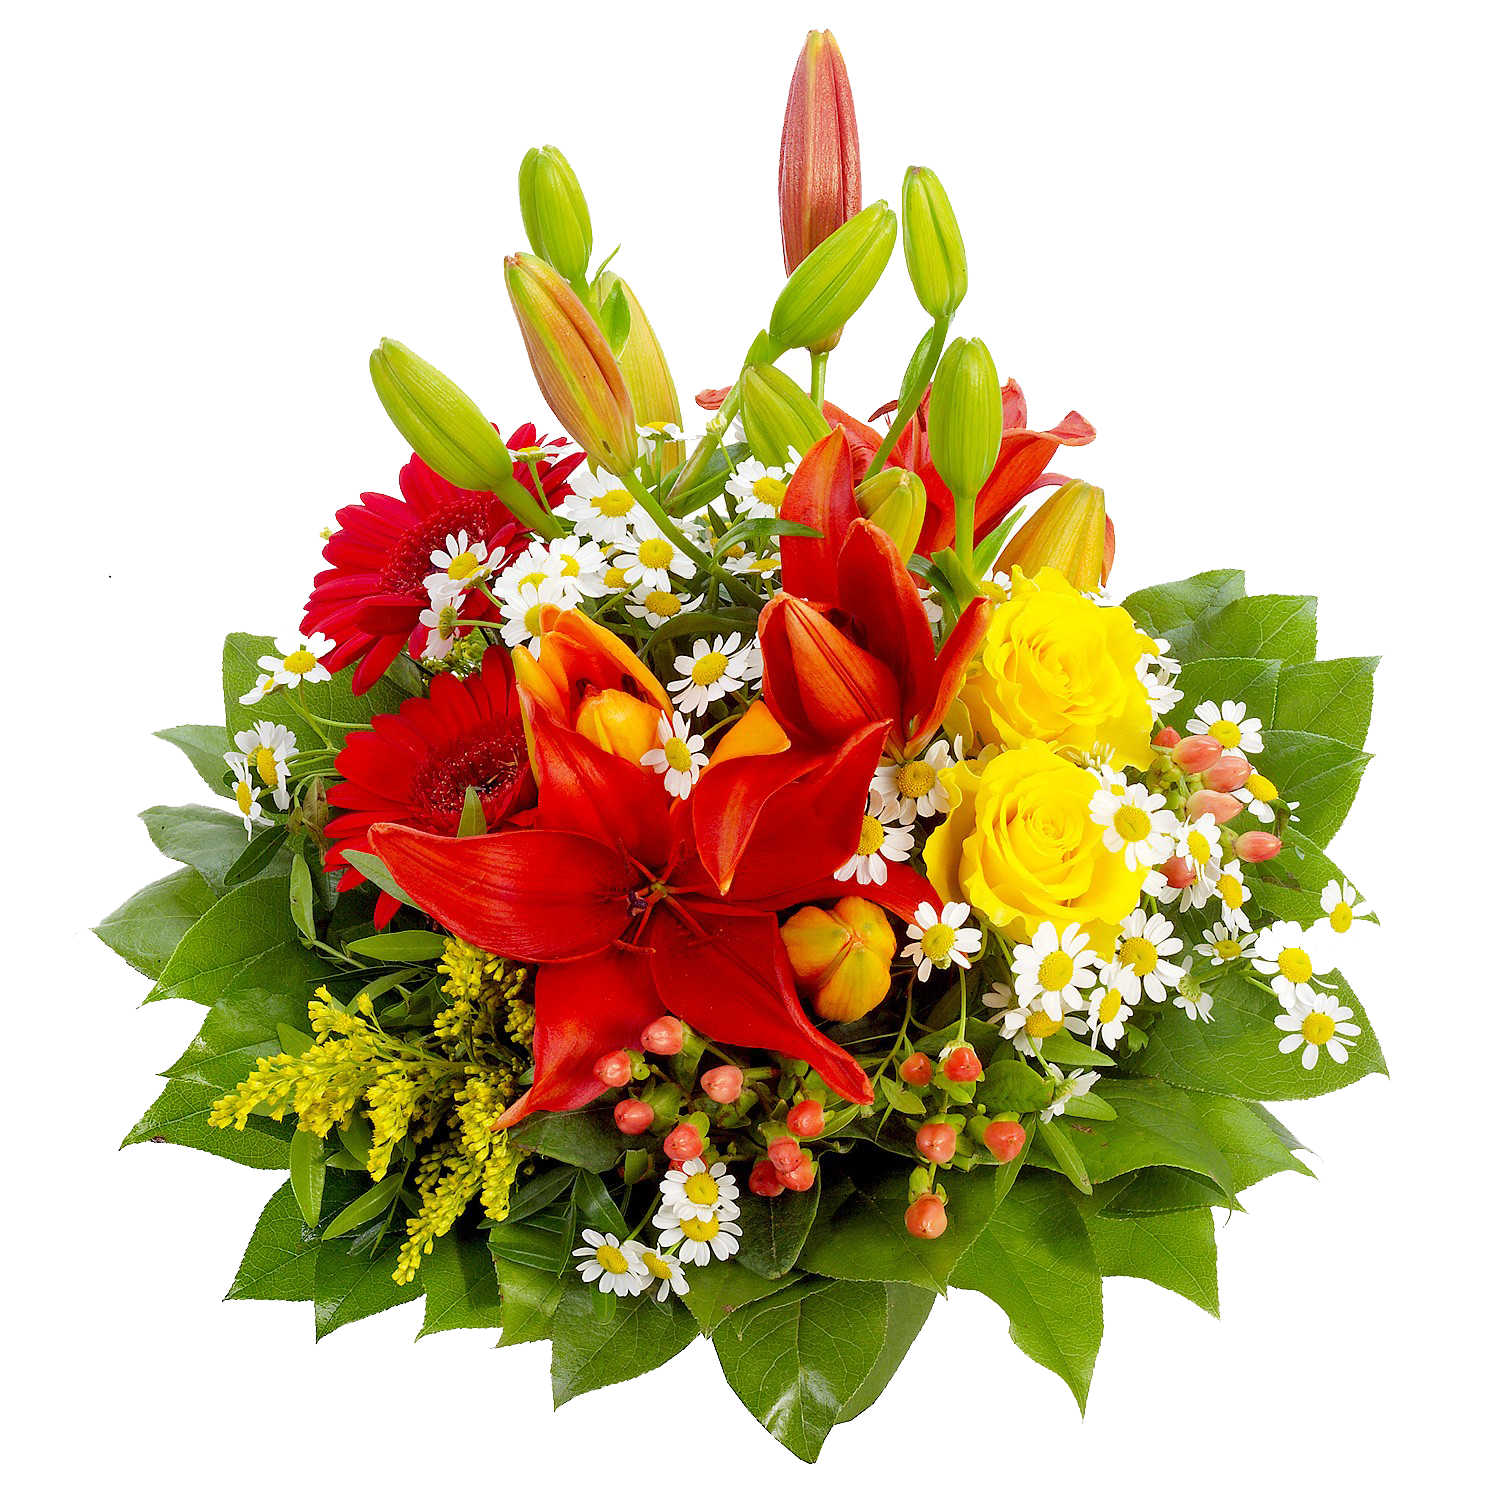 Flowers Png - Birthday Flowers Bouquet PNG Image